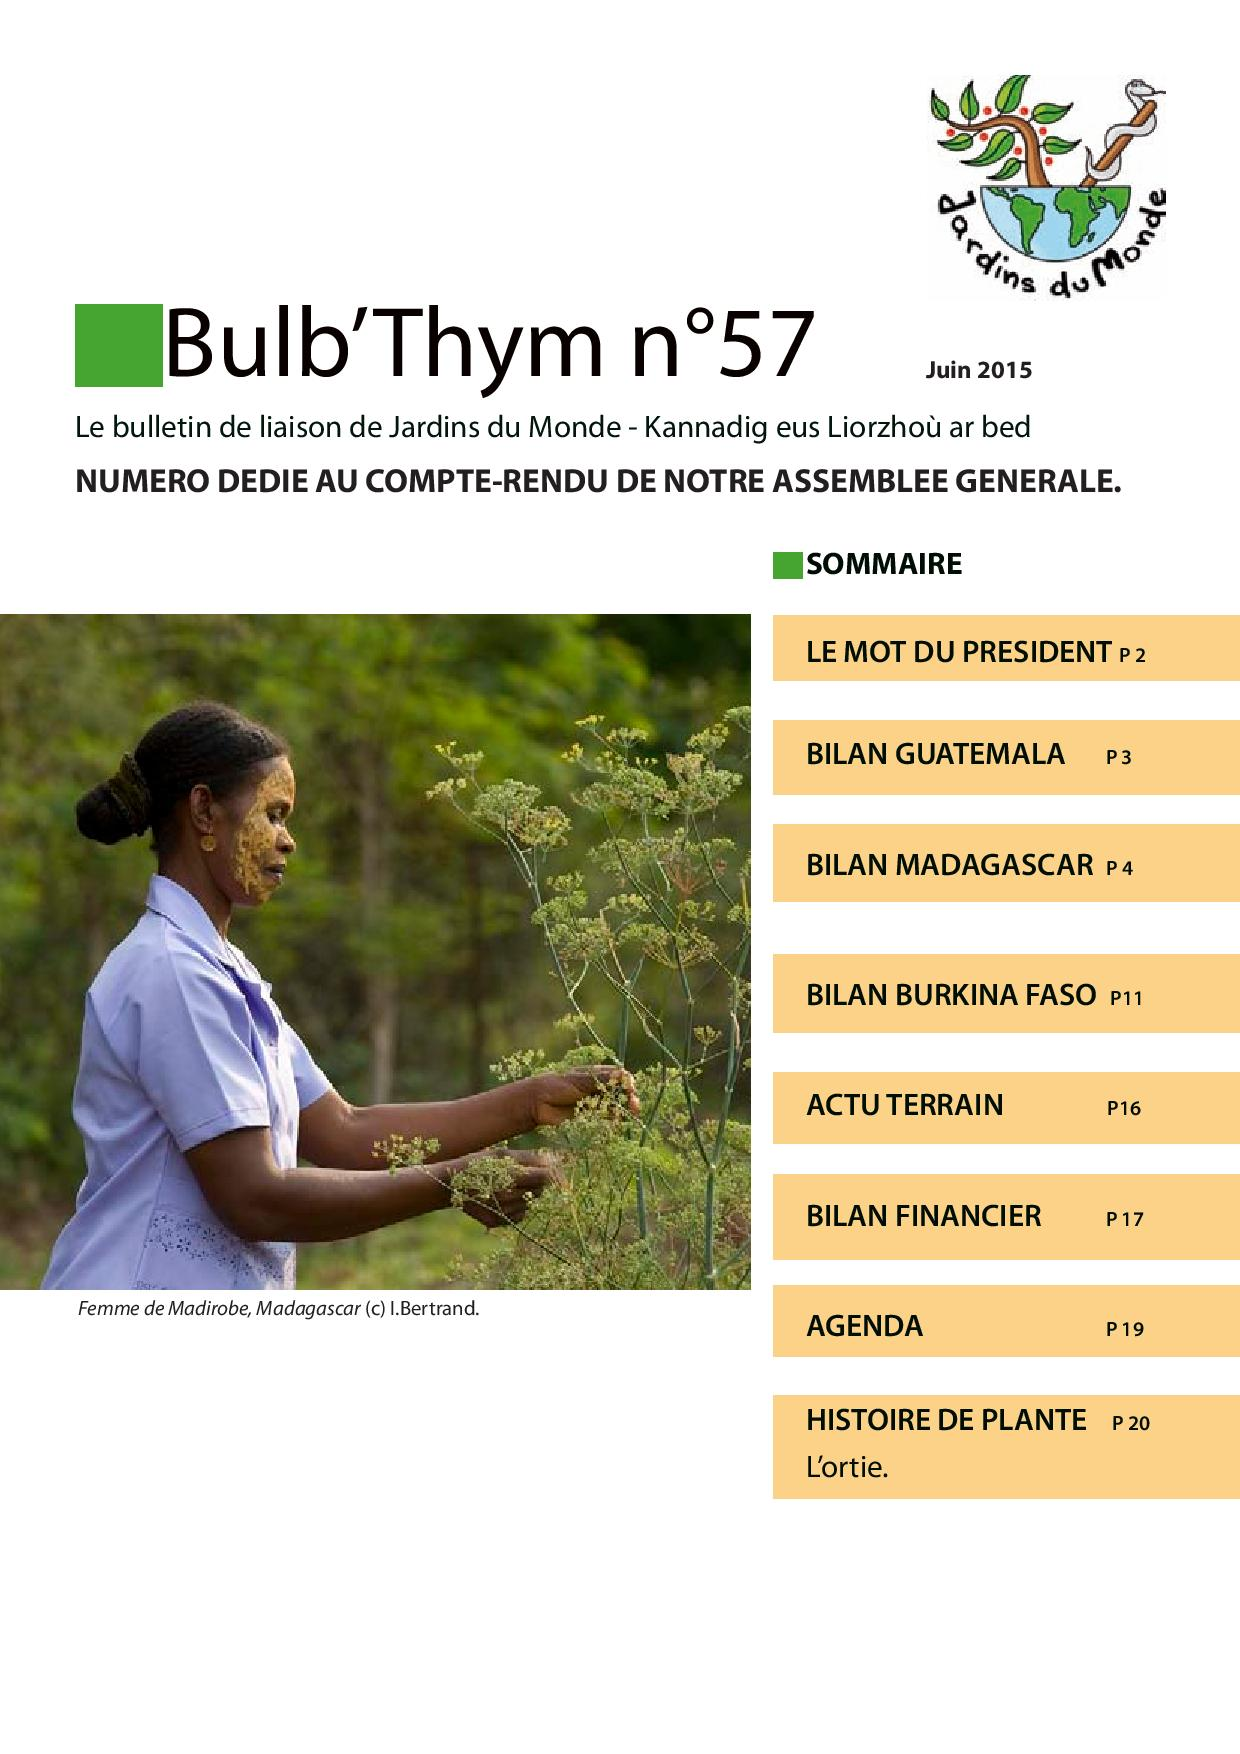 bulbthym57-page-001